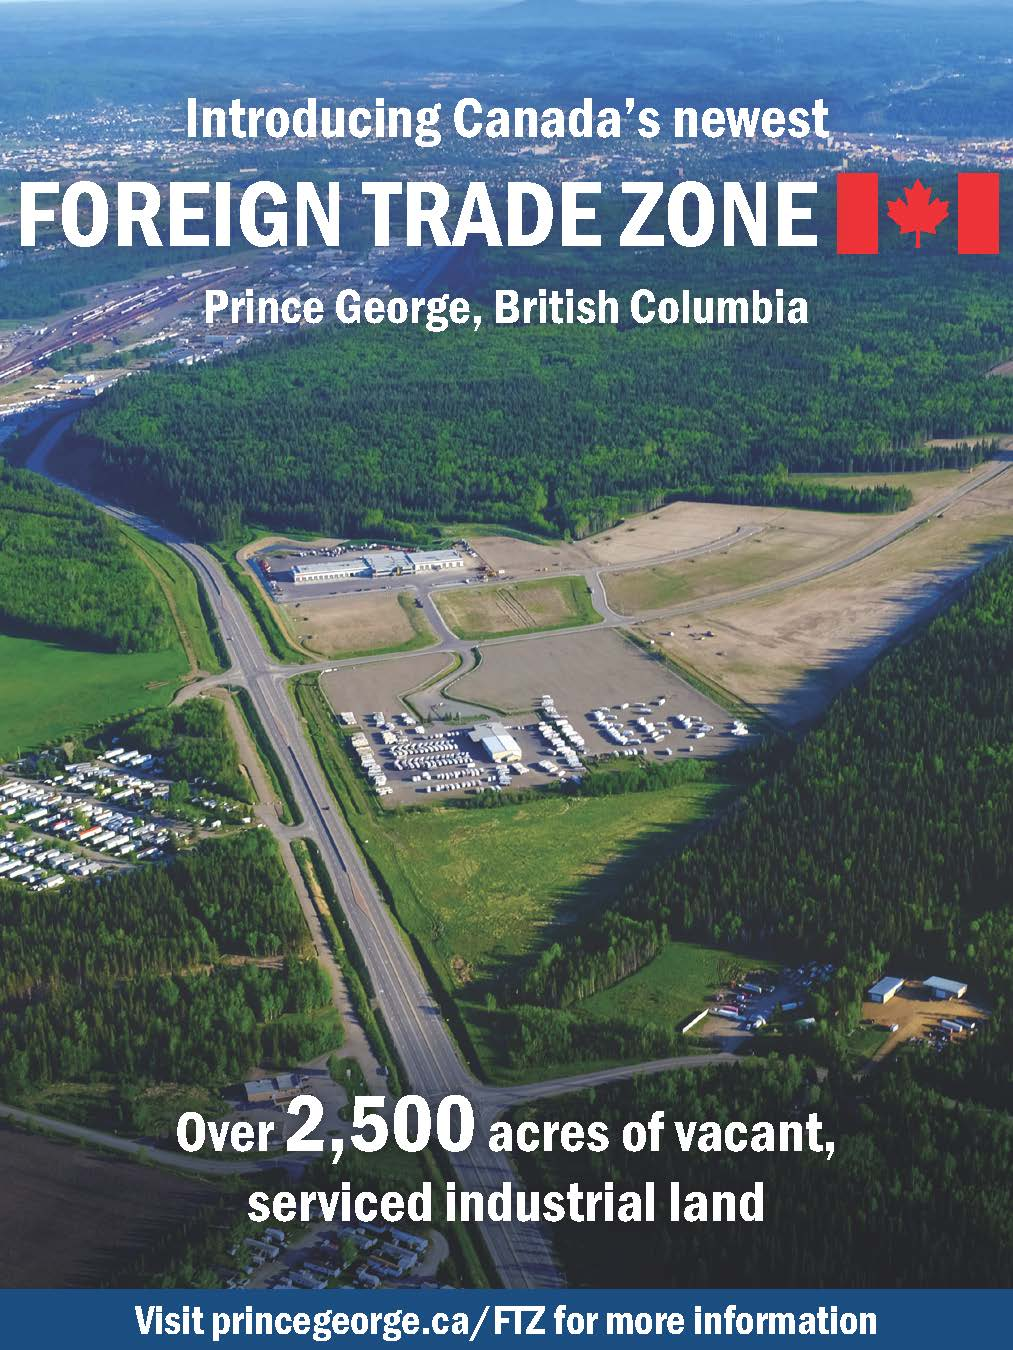 Prince George Foreign Trade Zone (FTZ)